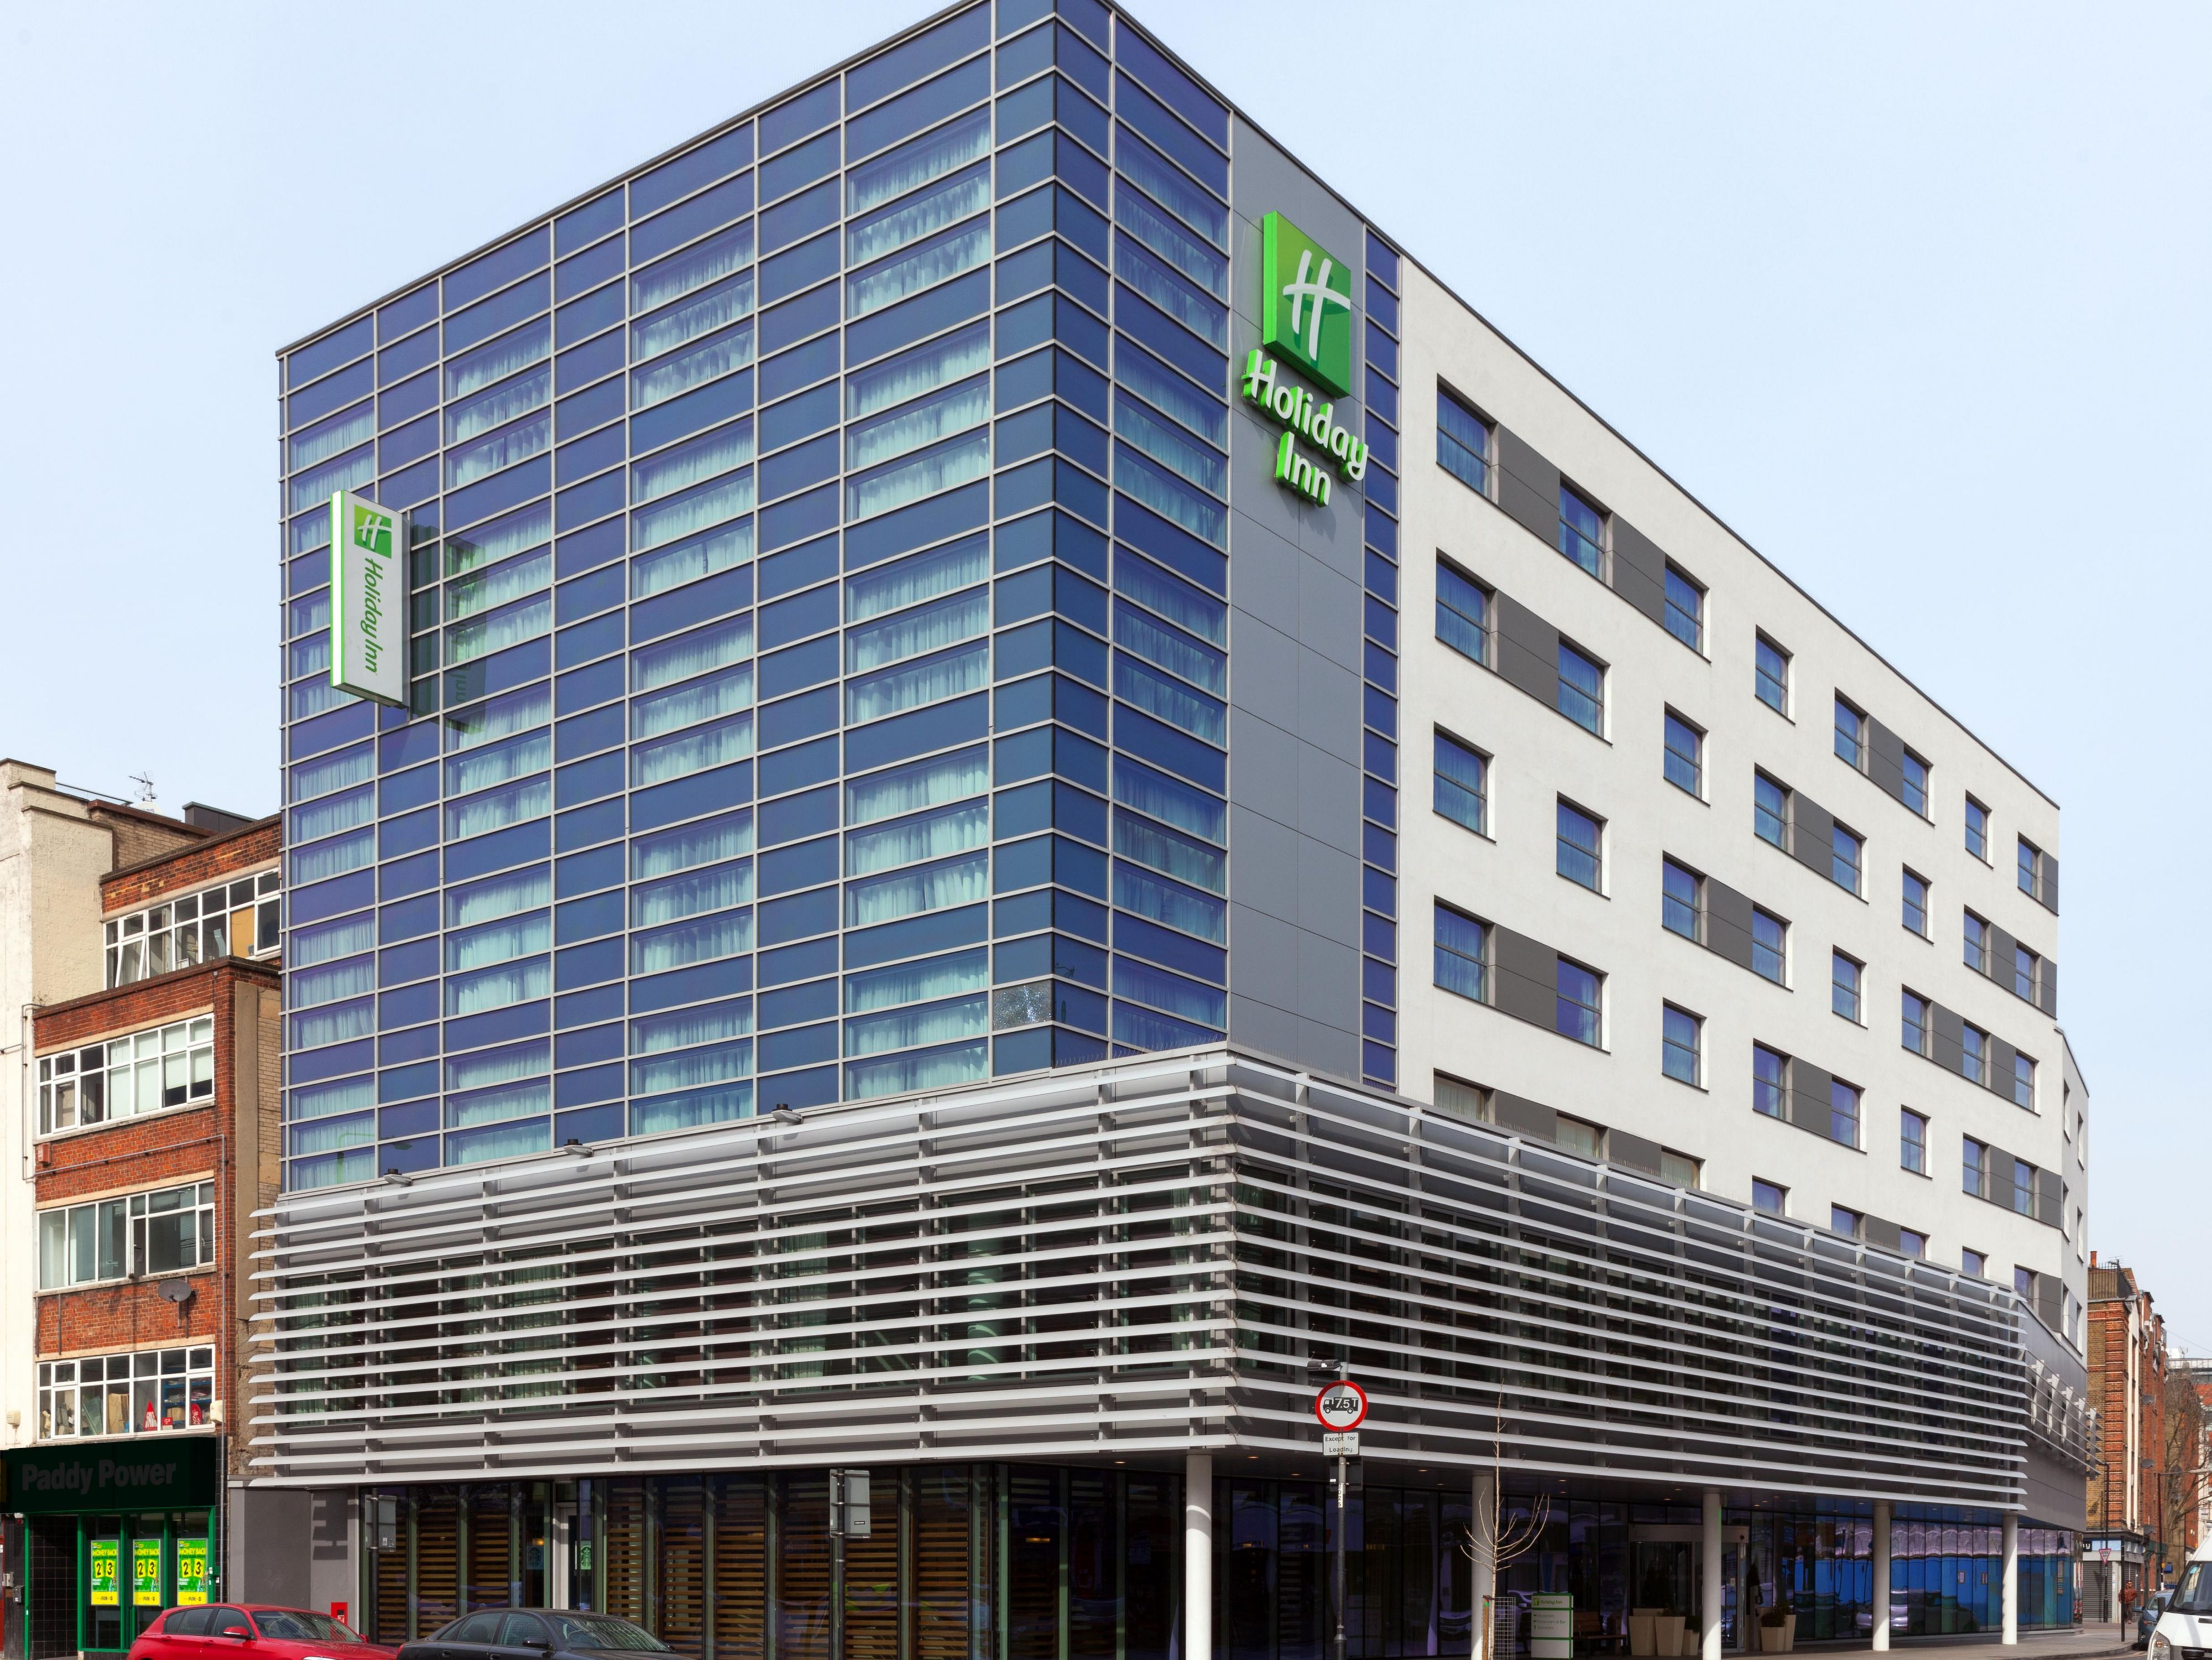 Holiday Inn London Commercial Road Hotel Exterior Daytime